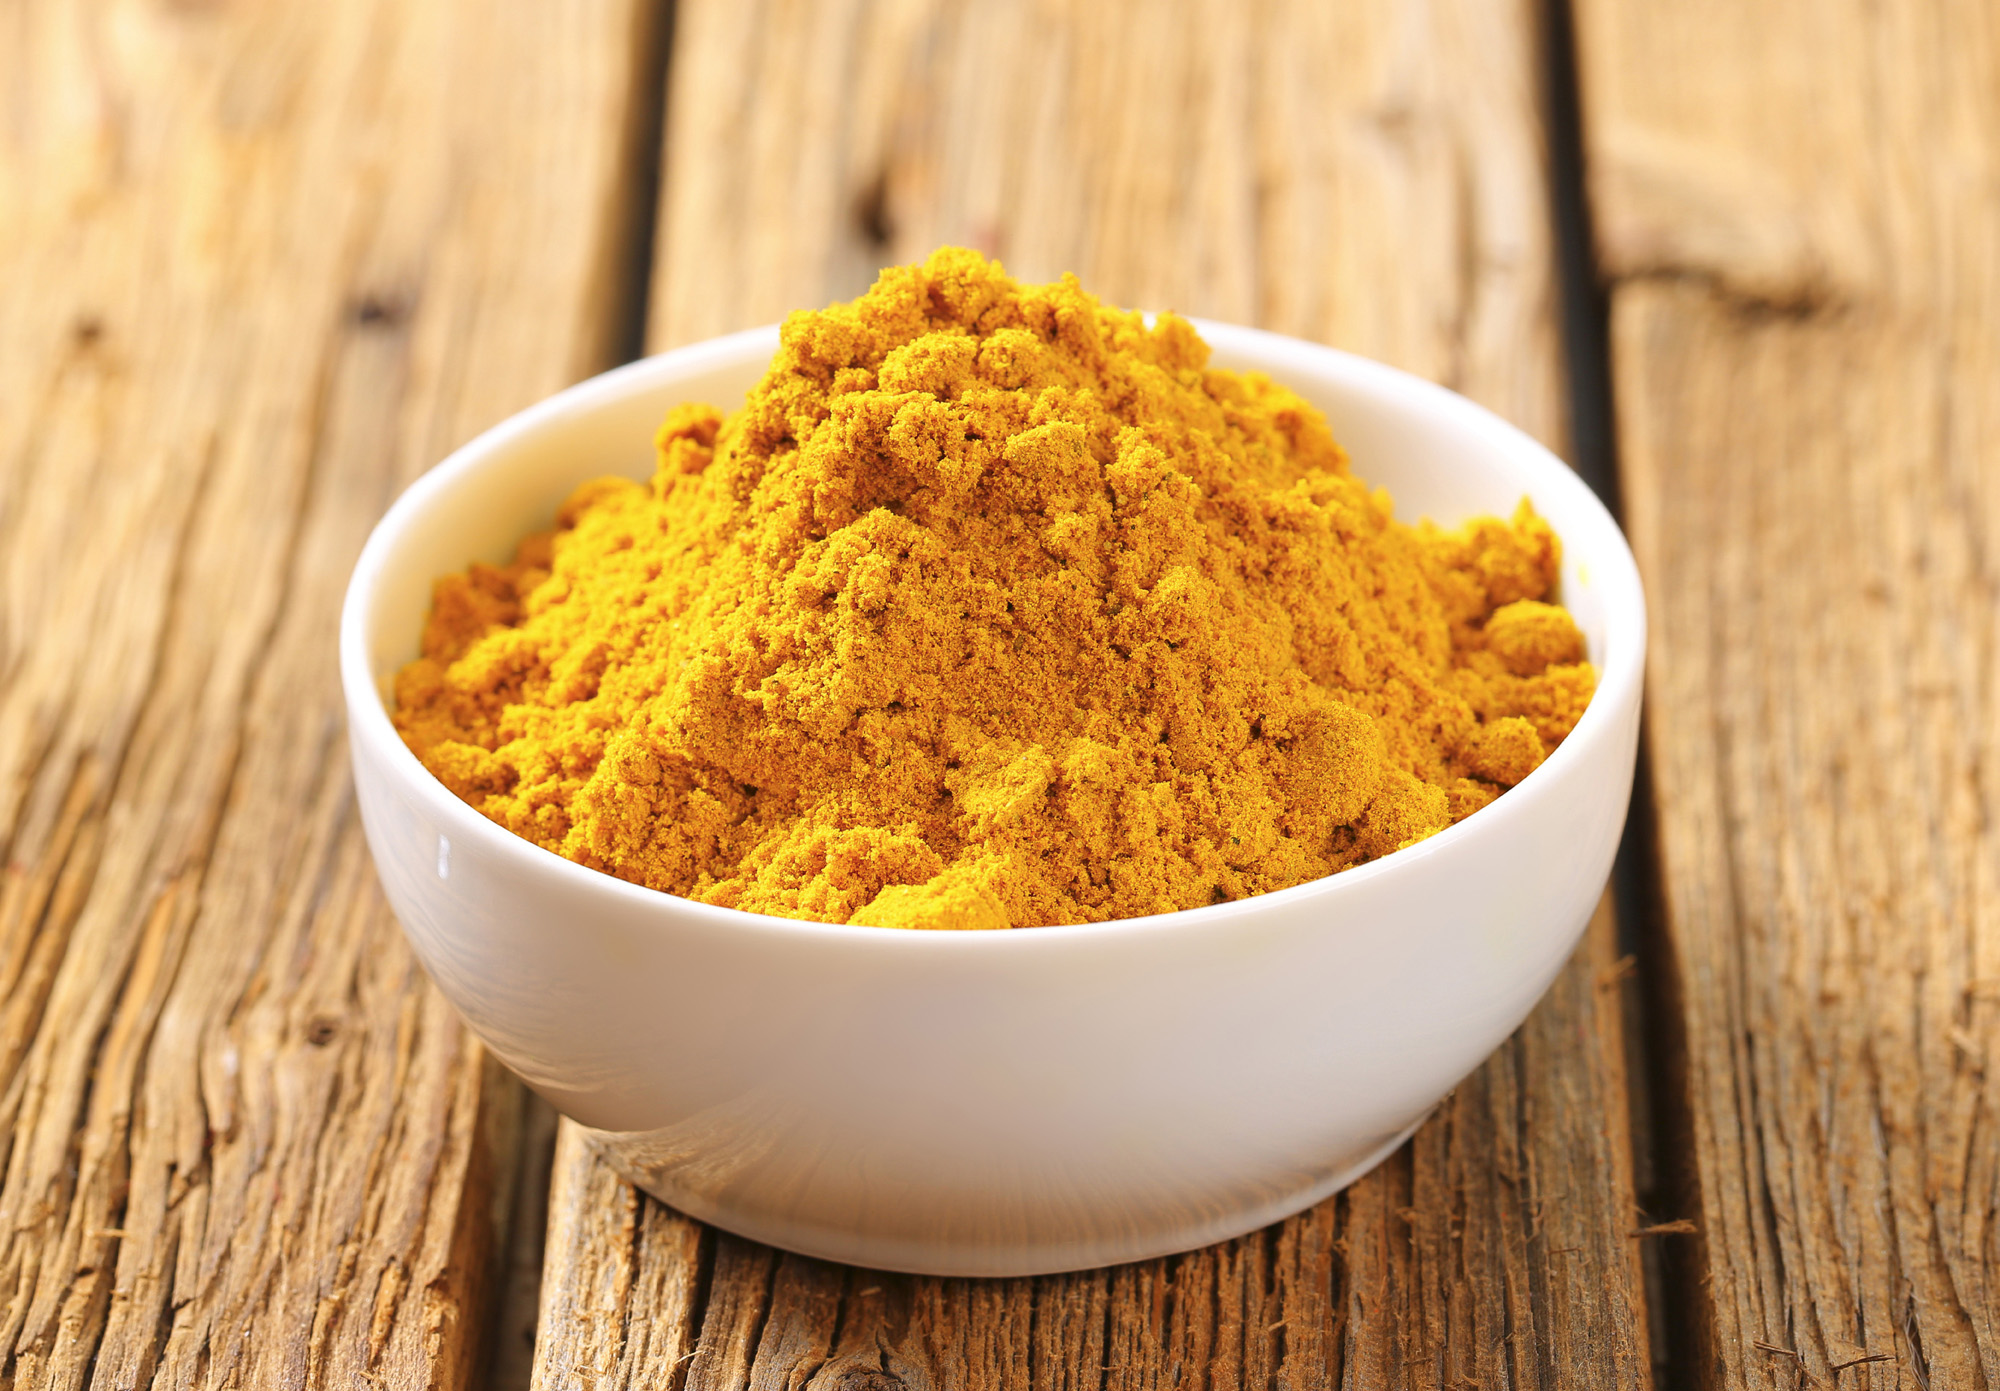 Curcumin is very well researched as anti-inflammatory, anti-ageing and antioxidant active ingredient and also possesses skin lightening and lipolytic properties